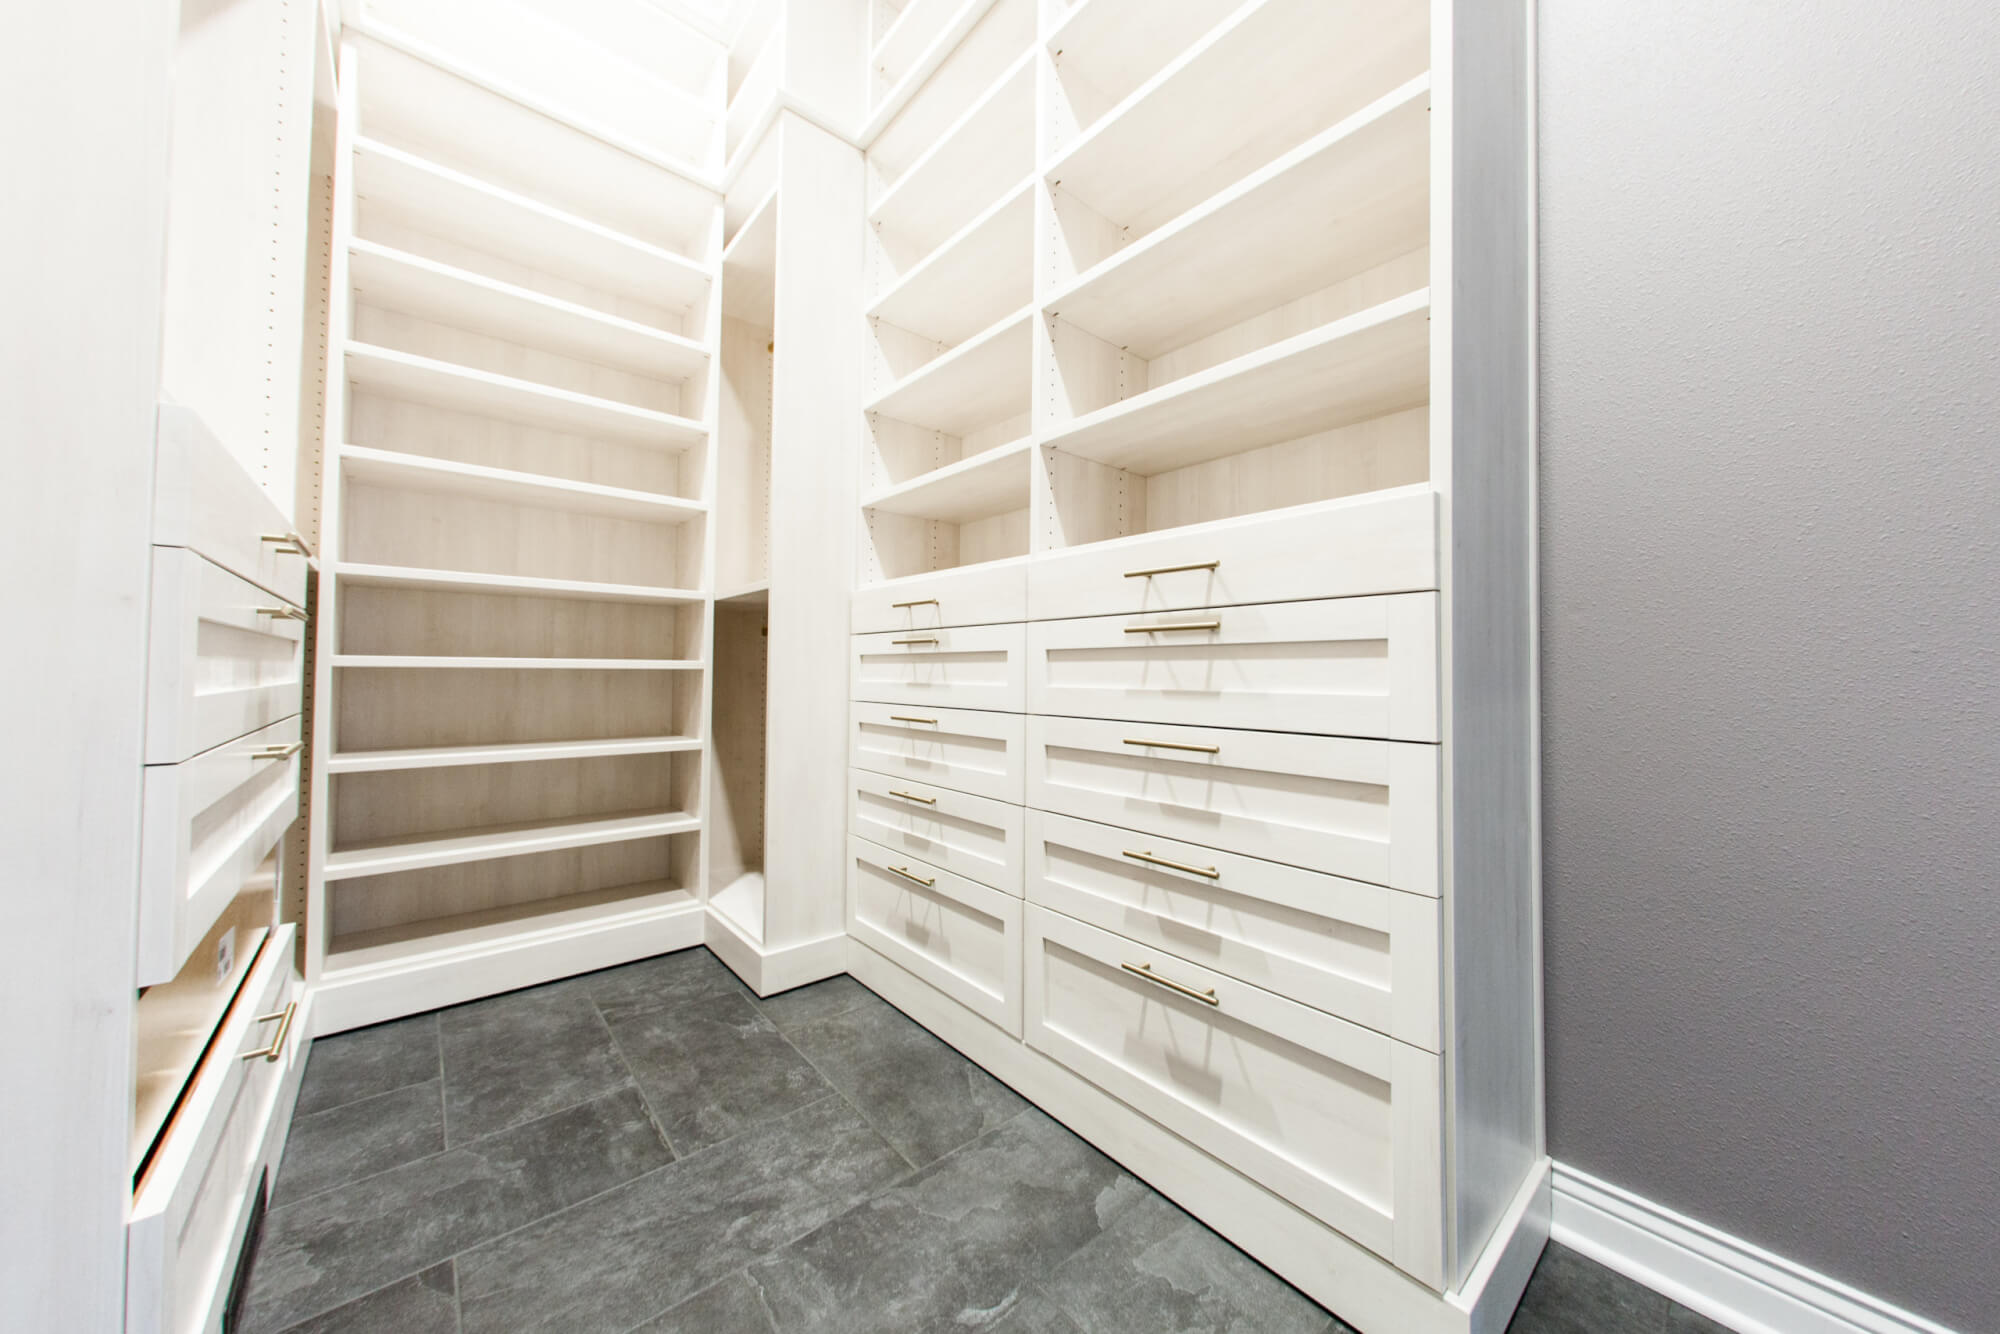 walk-in closet with built in white shelving and a tiled gray floor